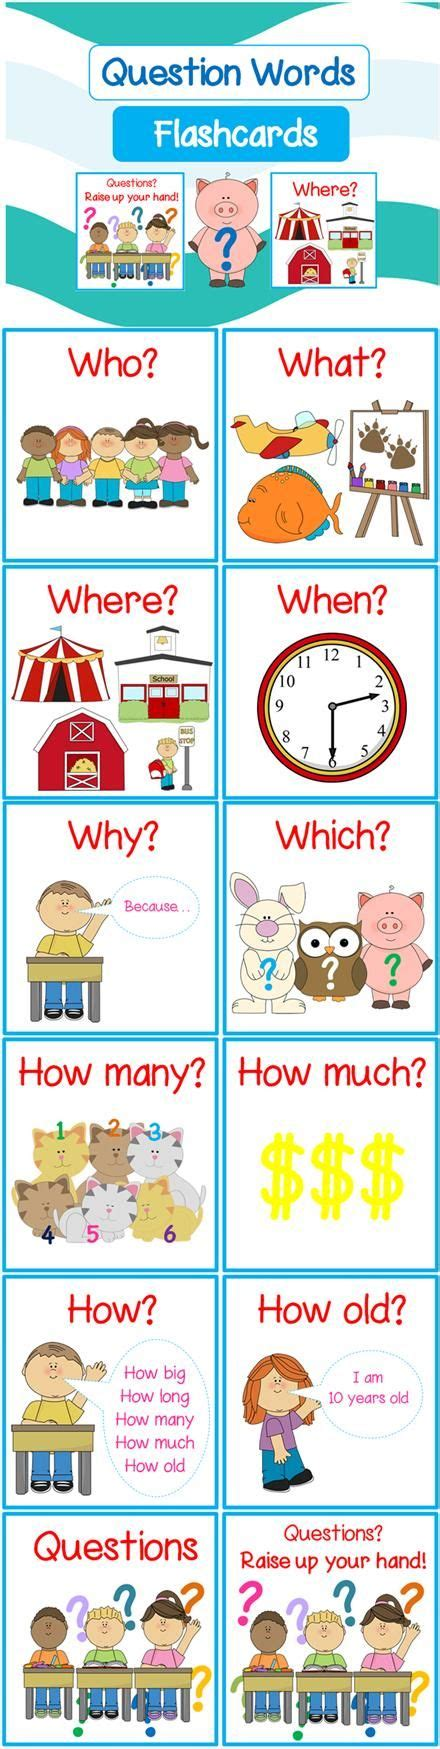 wh questions printable flash cards free question words flashcards includes when what